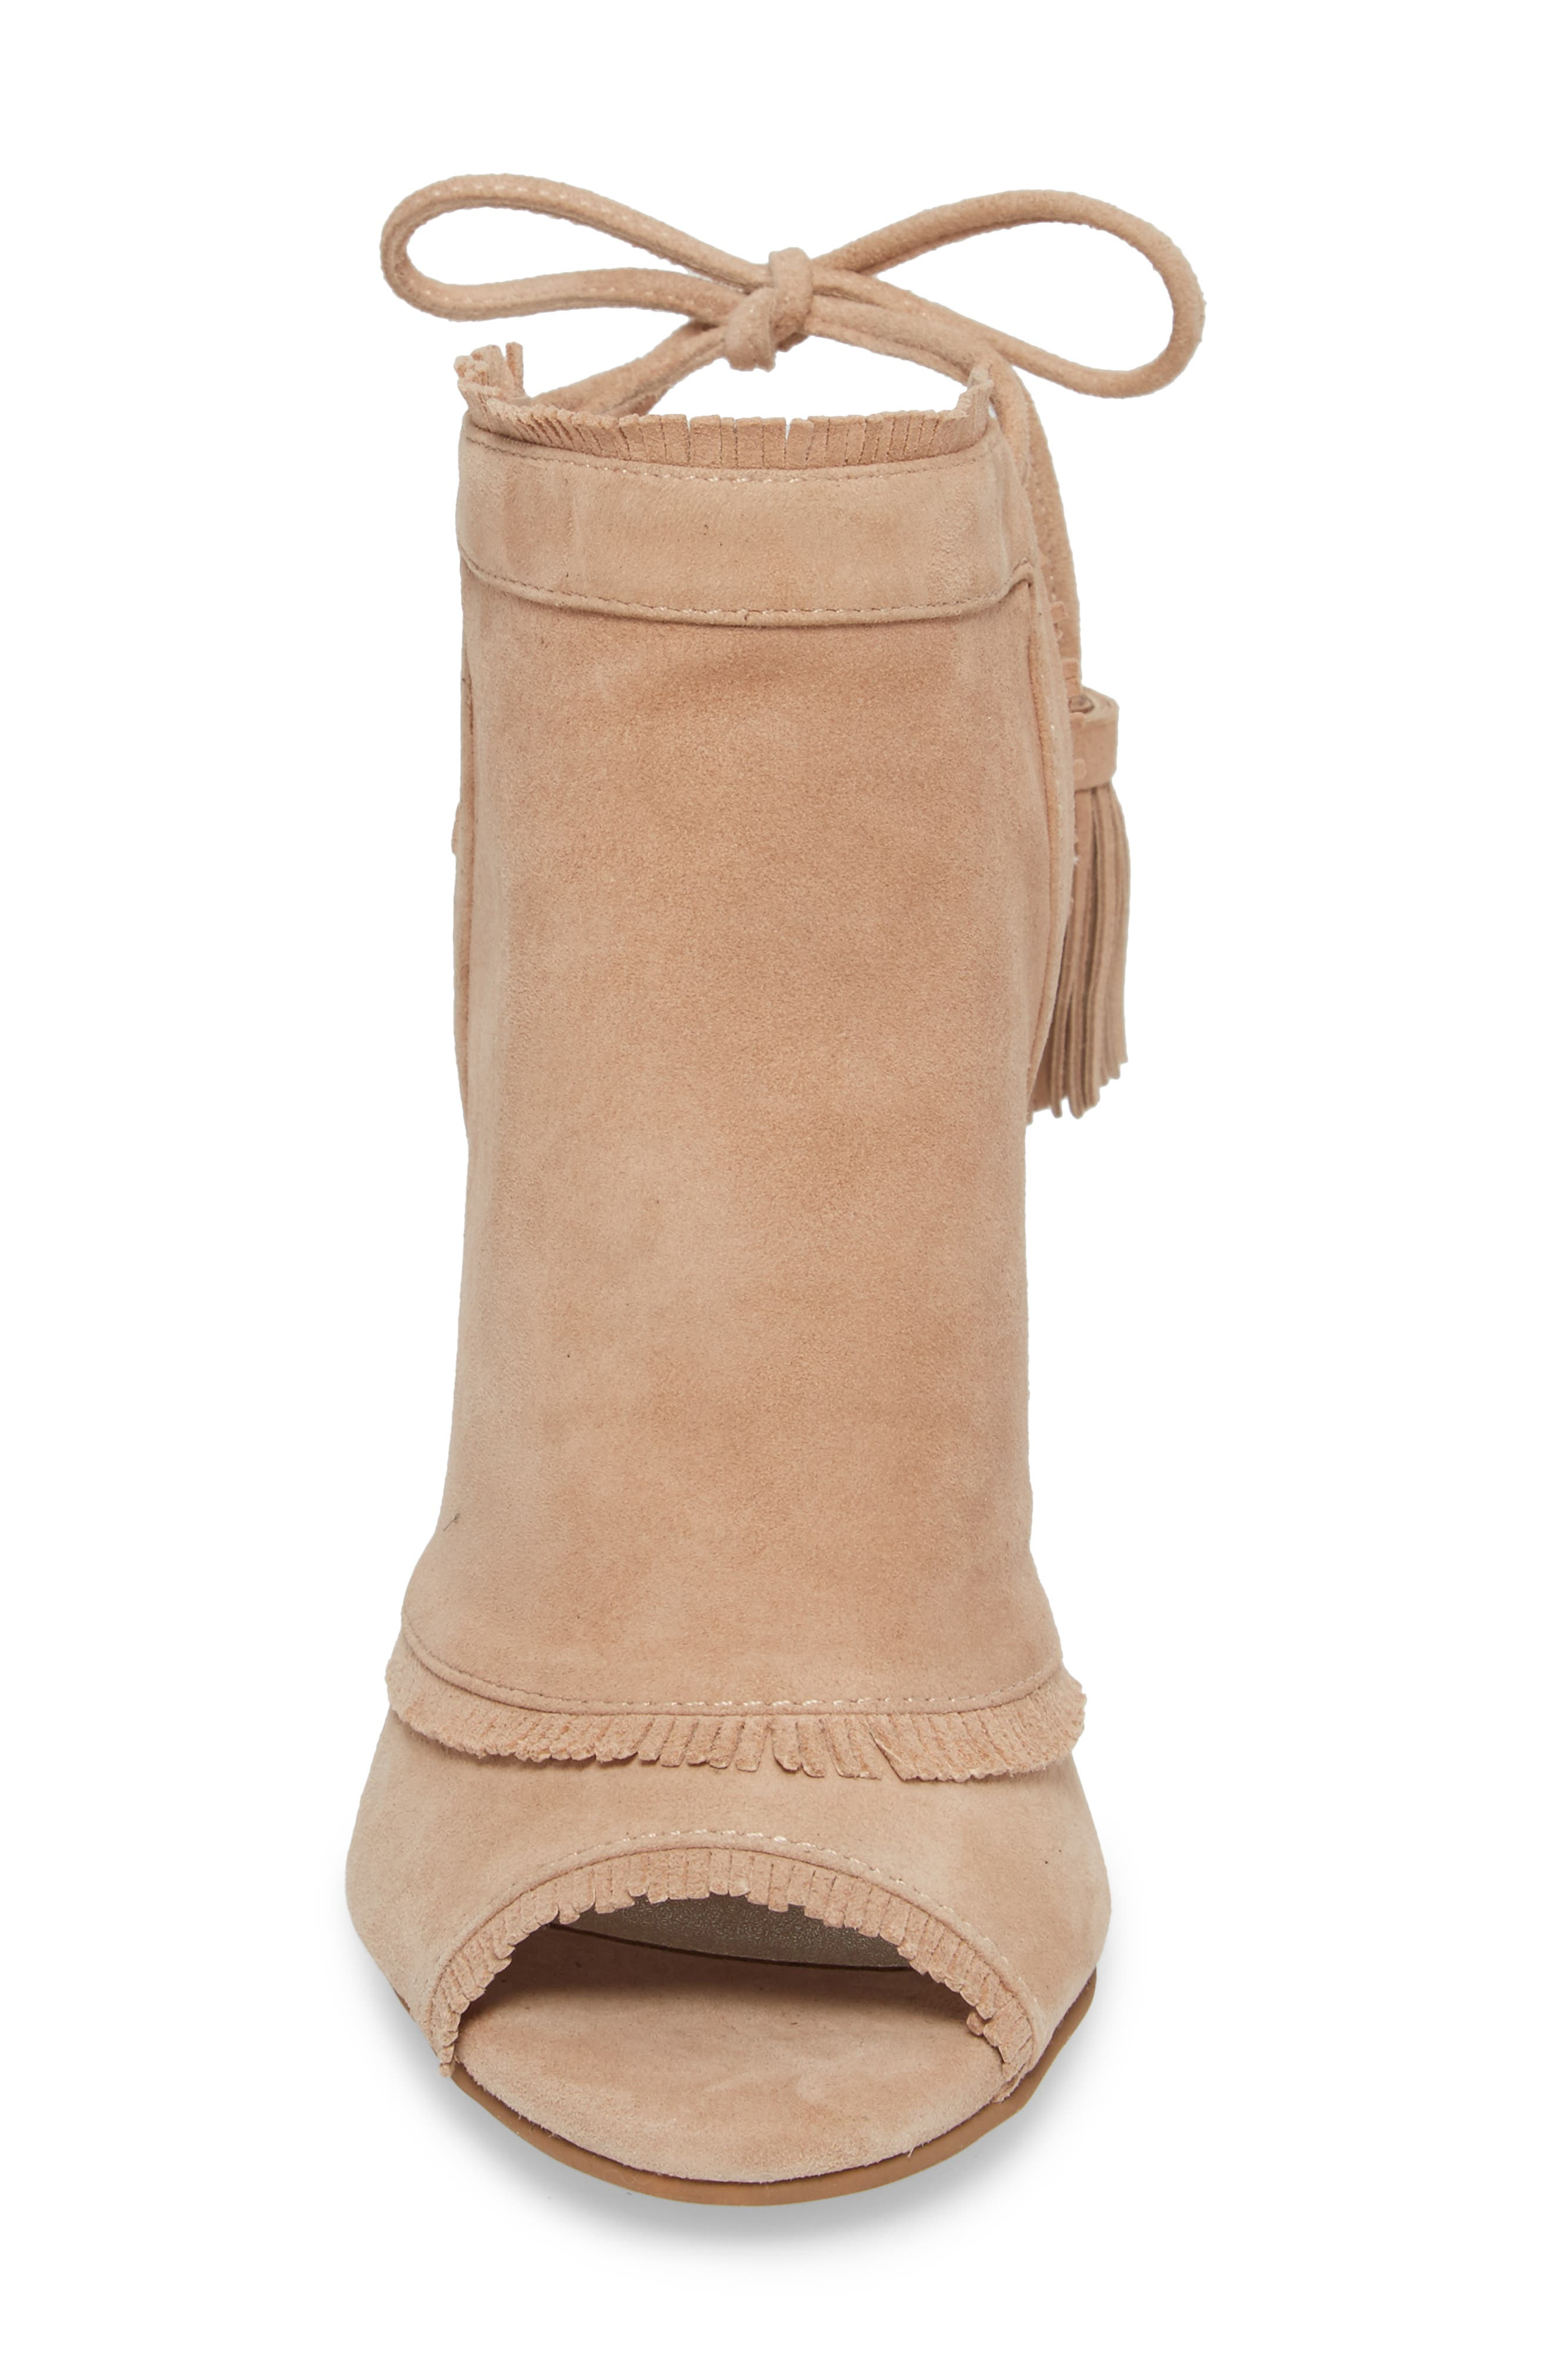 Leilani Wedge,                             Alternate thumbnail 4, color,                             Tigers Eye Suede